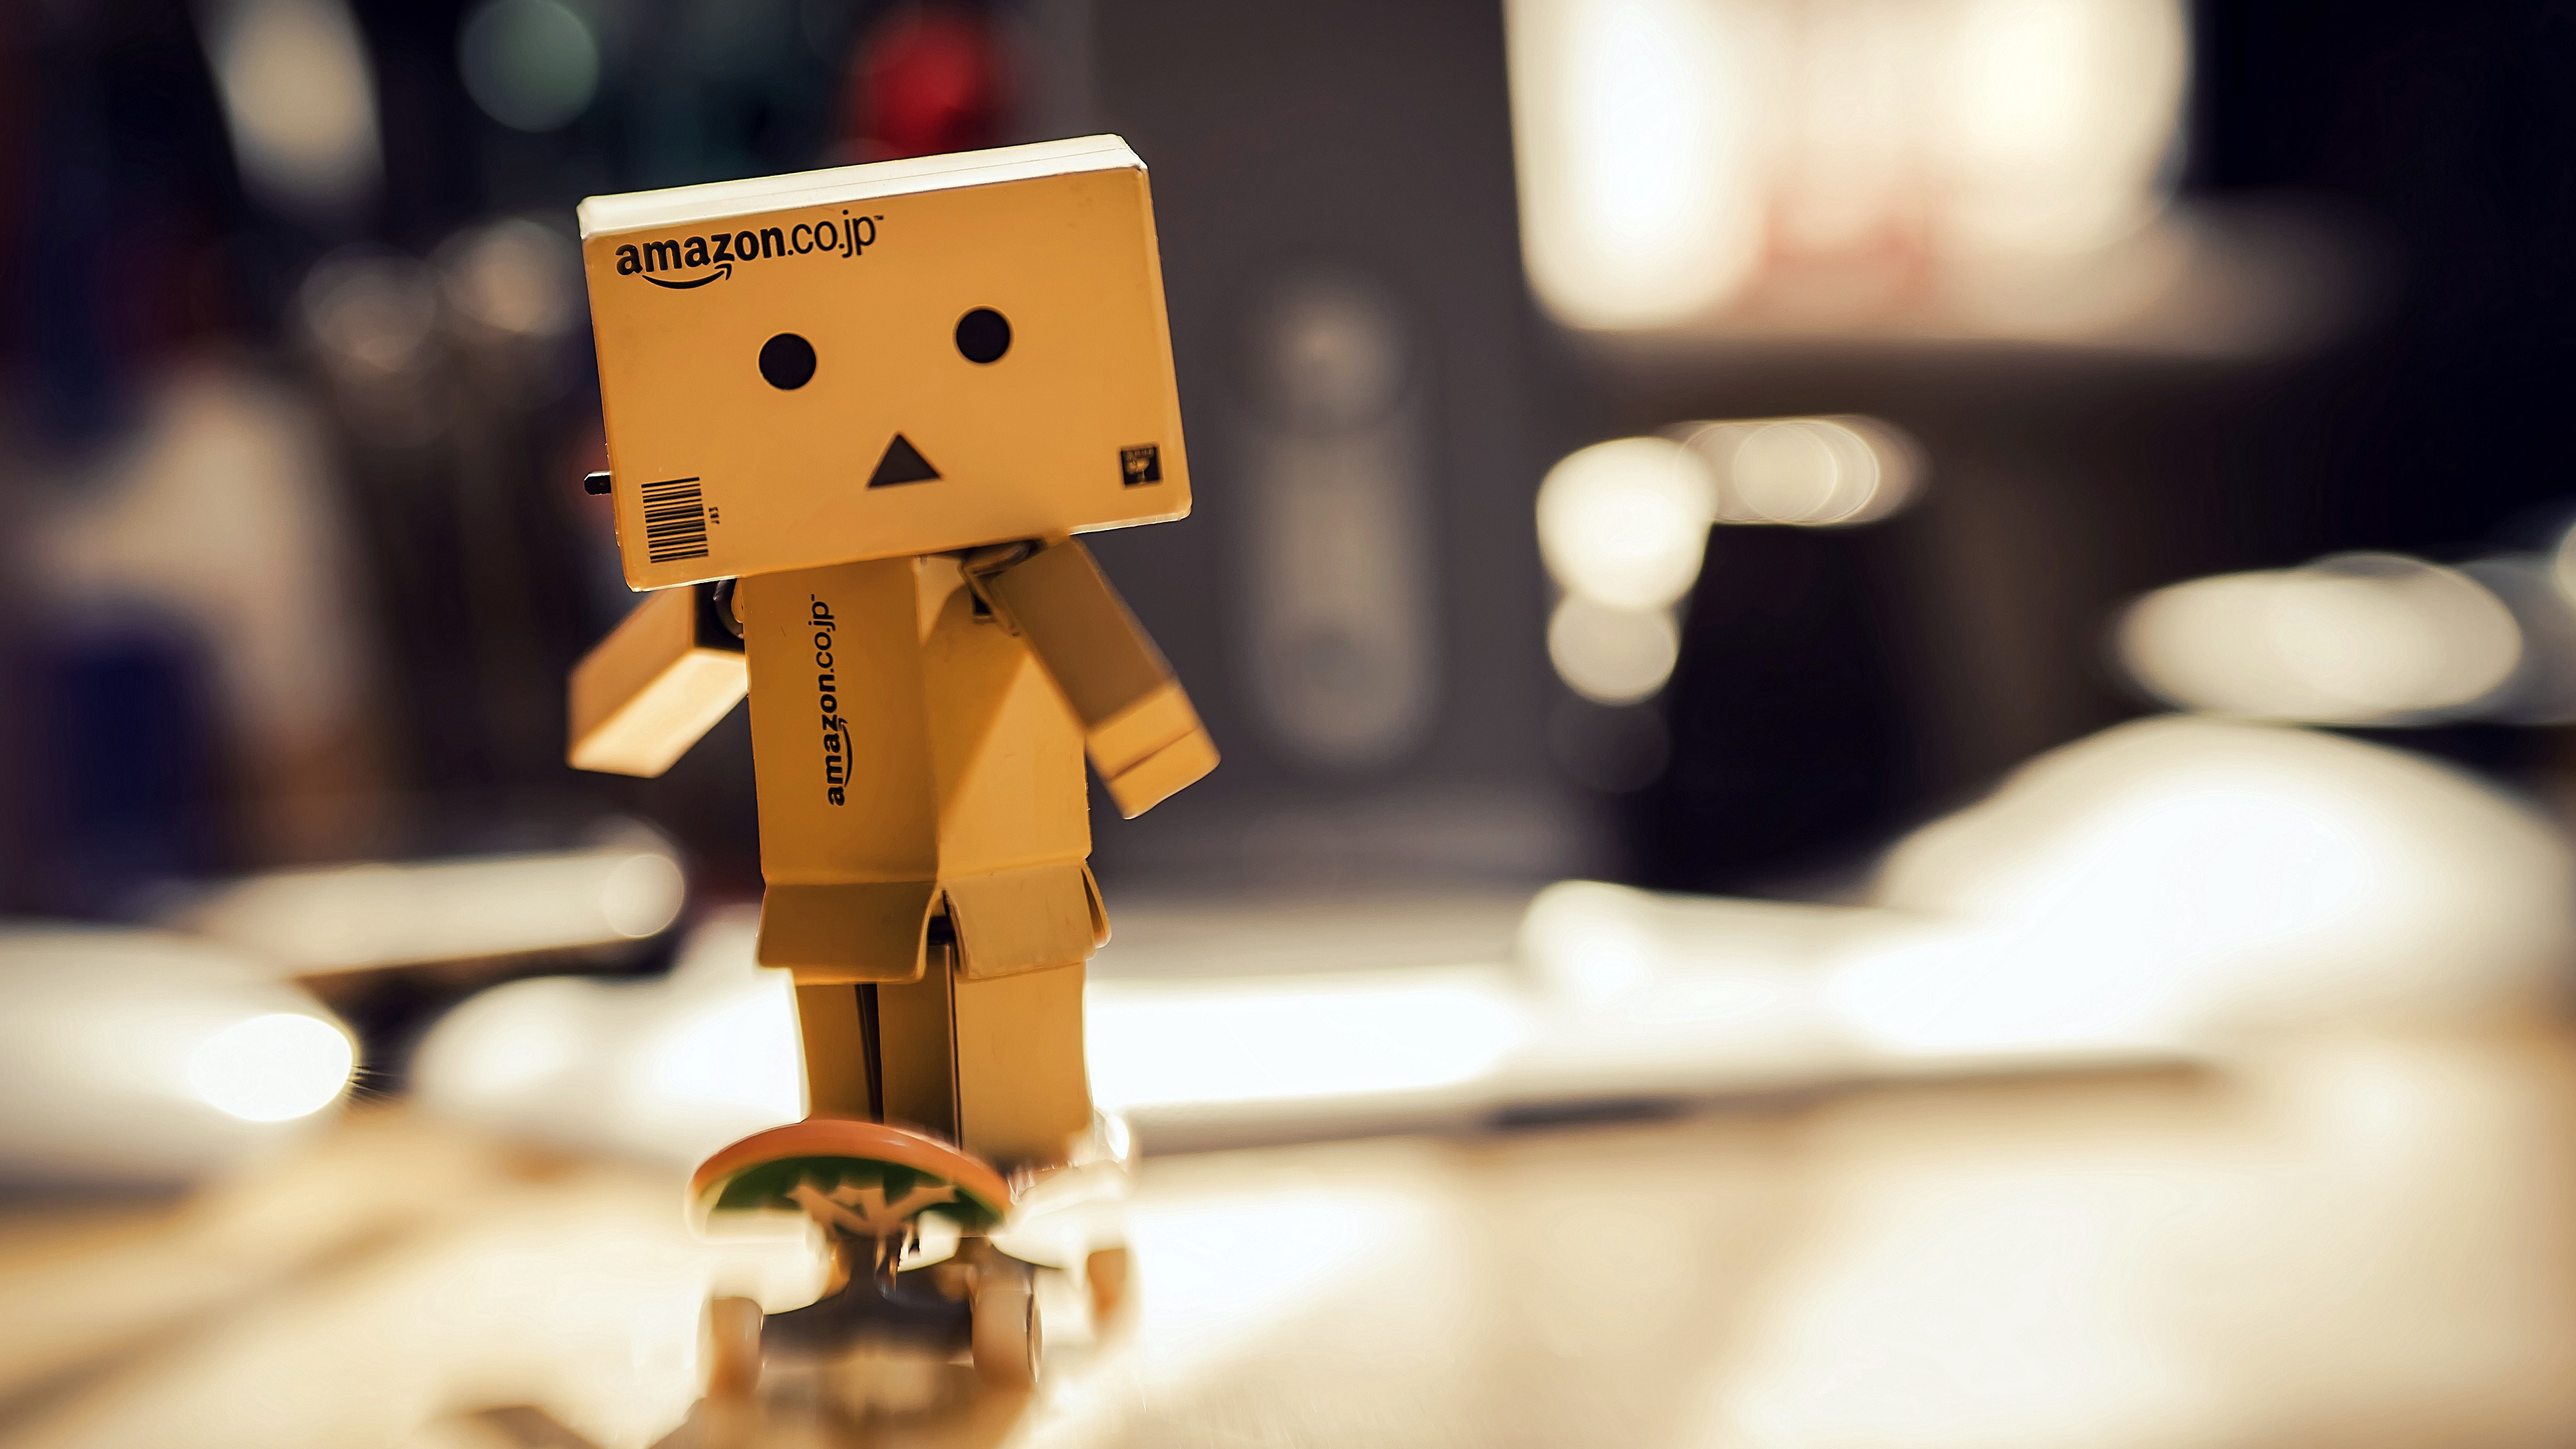 Amazon Danbo Cardboard Robot Skateboard - 3840x2160 wallpaper download